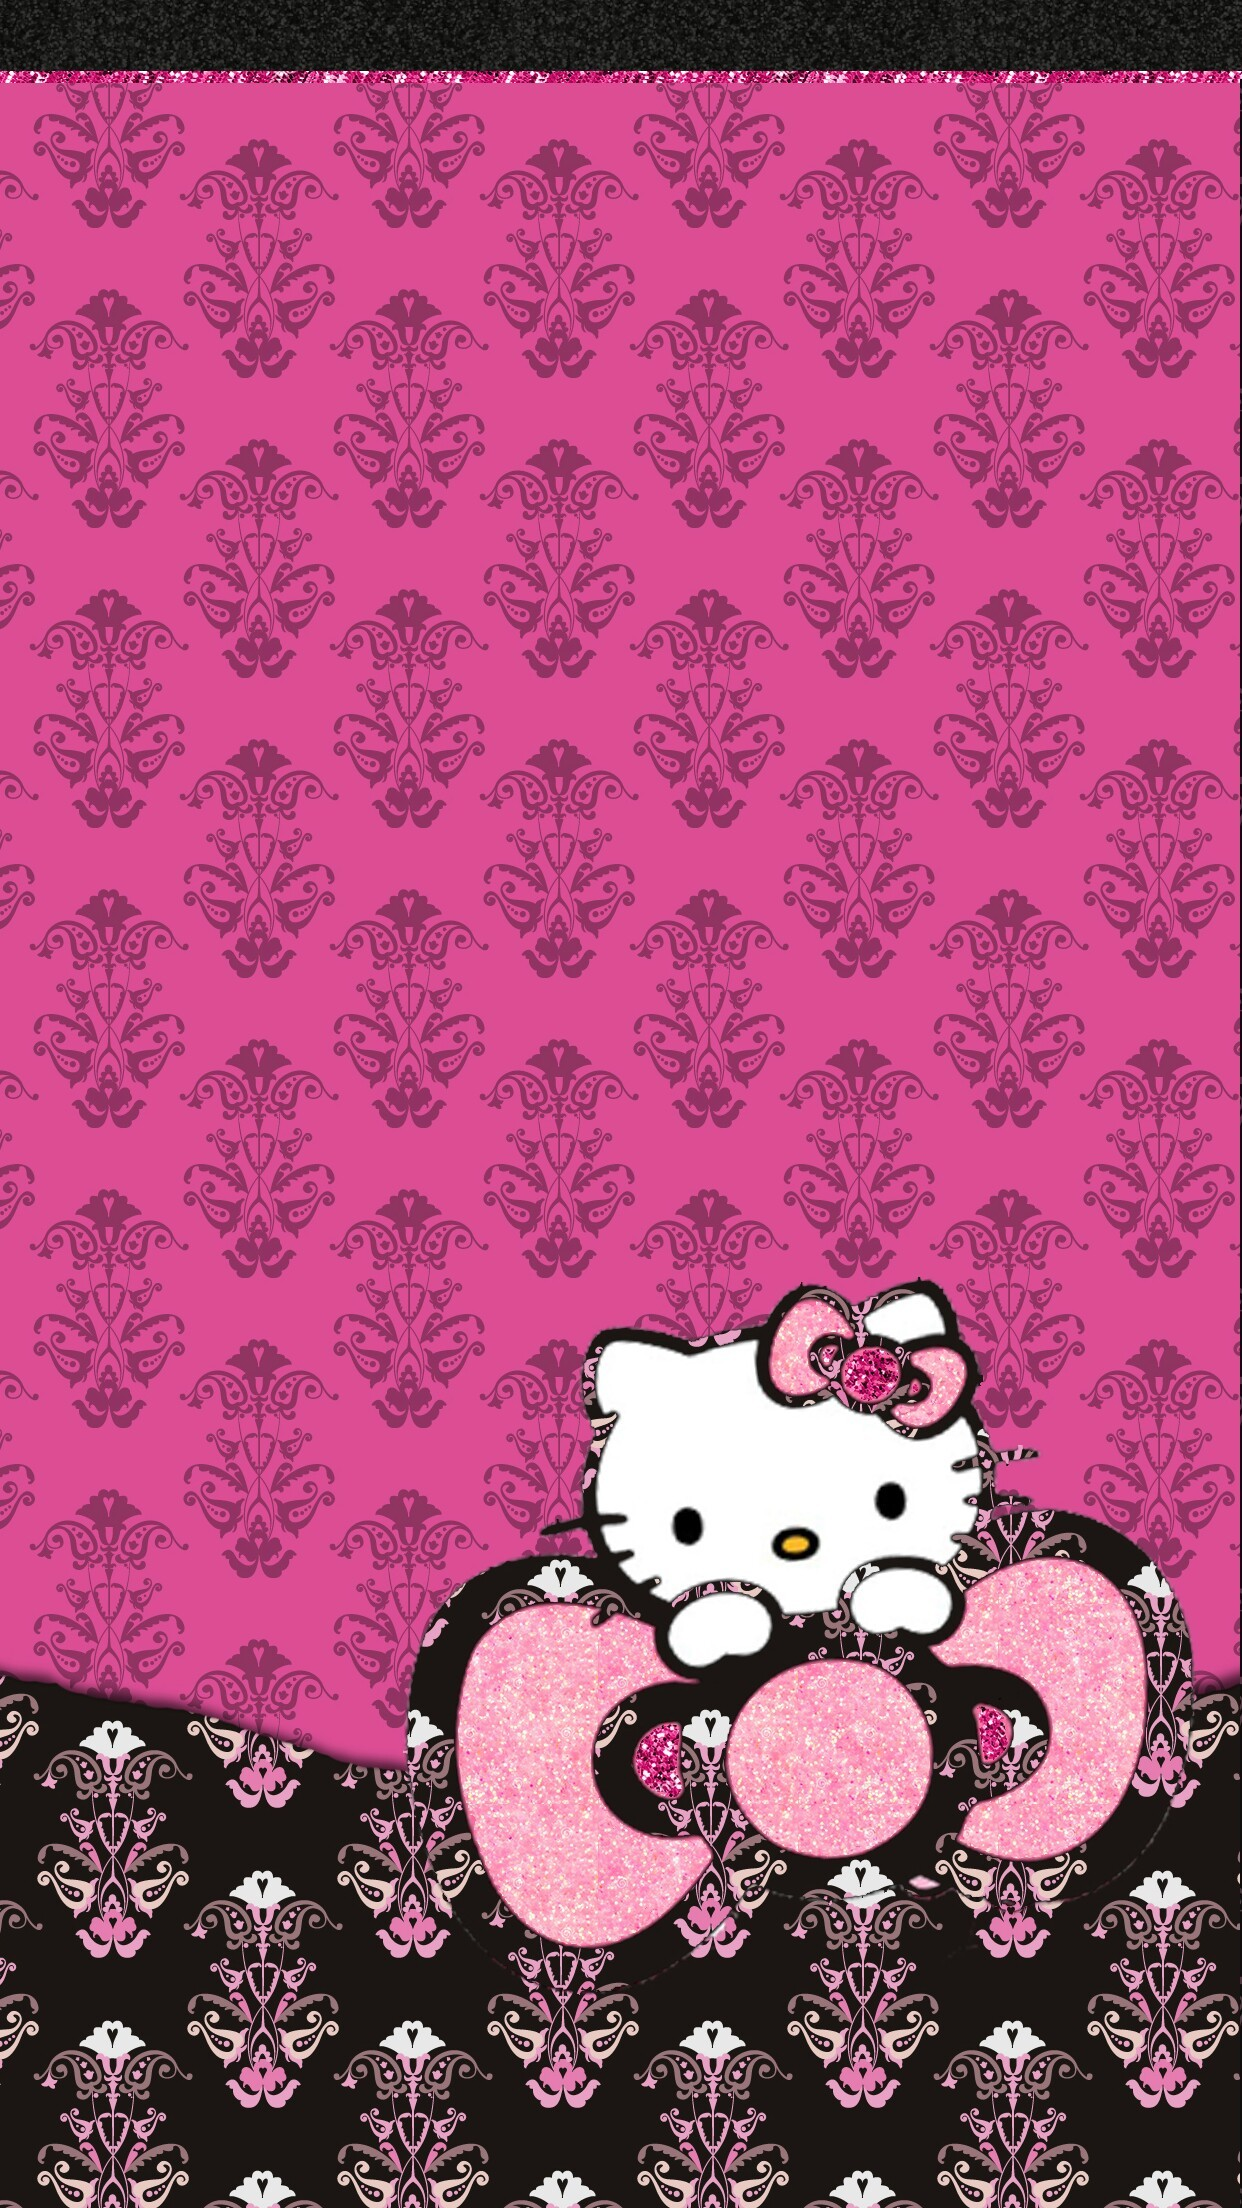 Cool Wallpaper Hello Kitty Ipad - 1006085-most-popular-hello-kitty-wallpapers-and-screensavers-1242x2208-ipad-pro  Image_232757.jpg